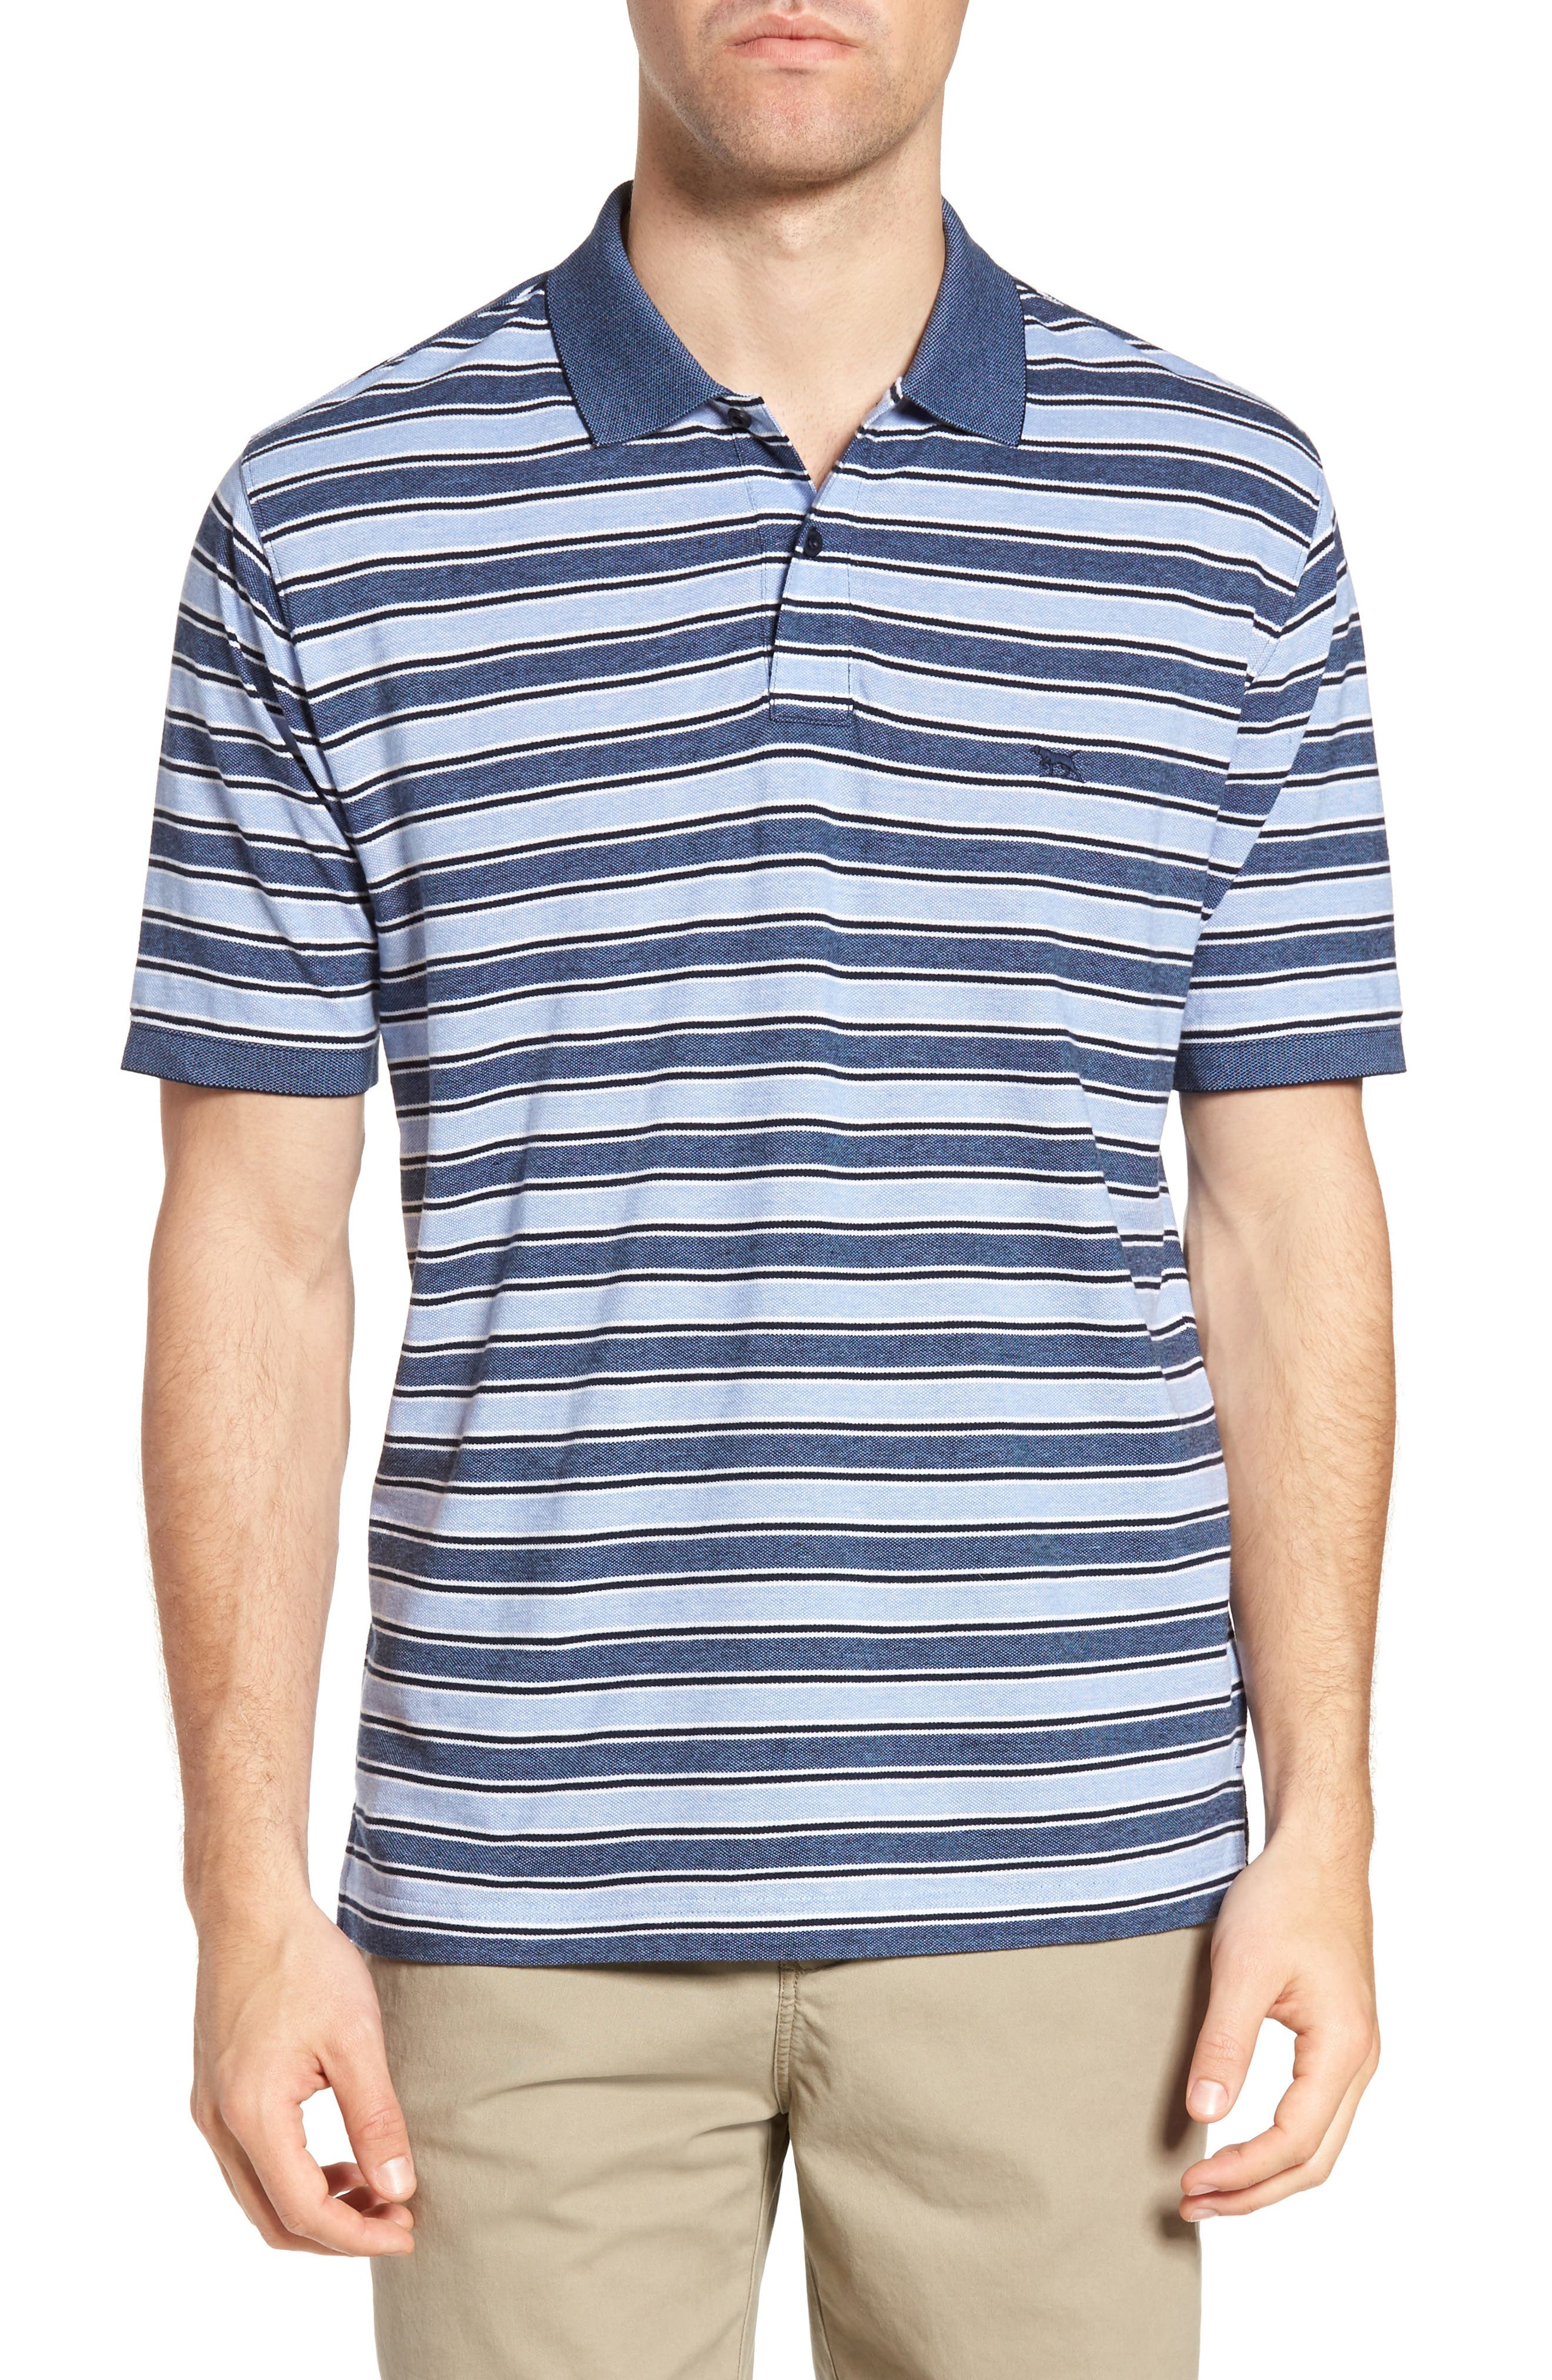 Main Image - Rodd & Gunn Sandy Point Stripe Piqué Polo